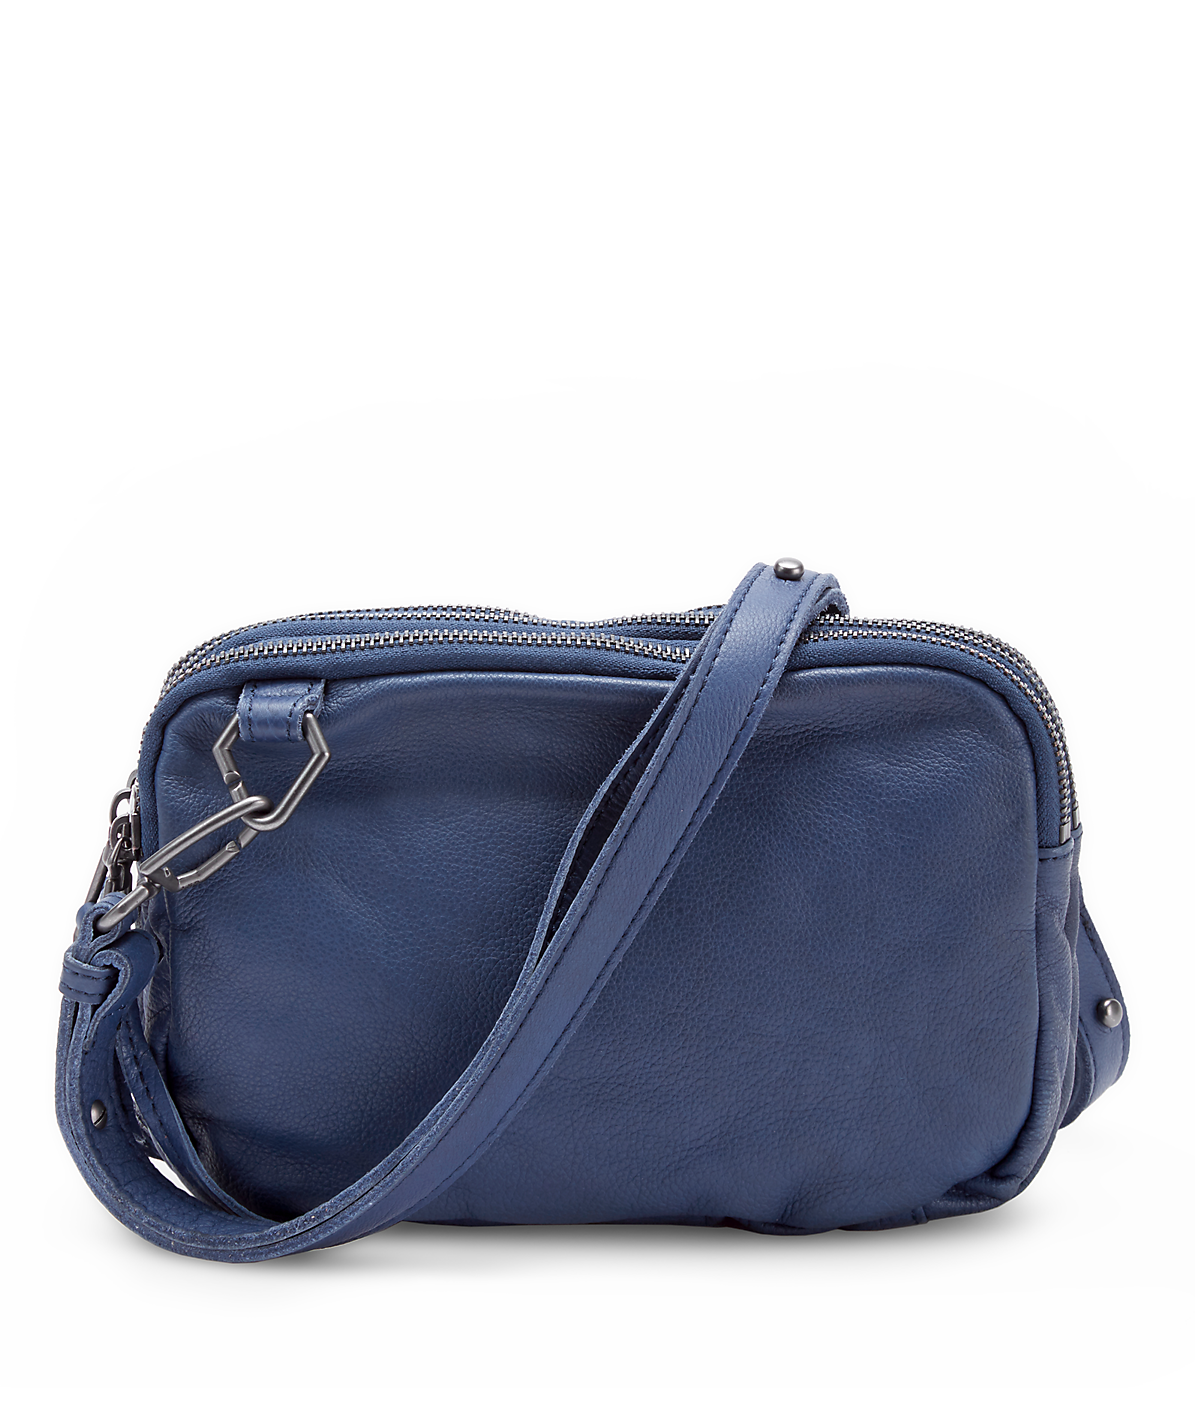 Maike S cross-body bag from liebeskind